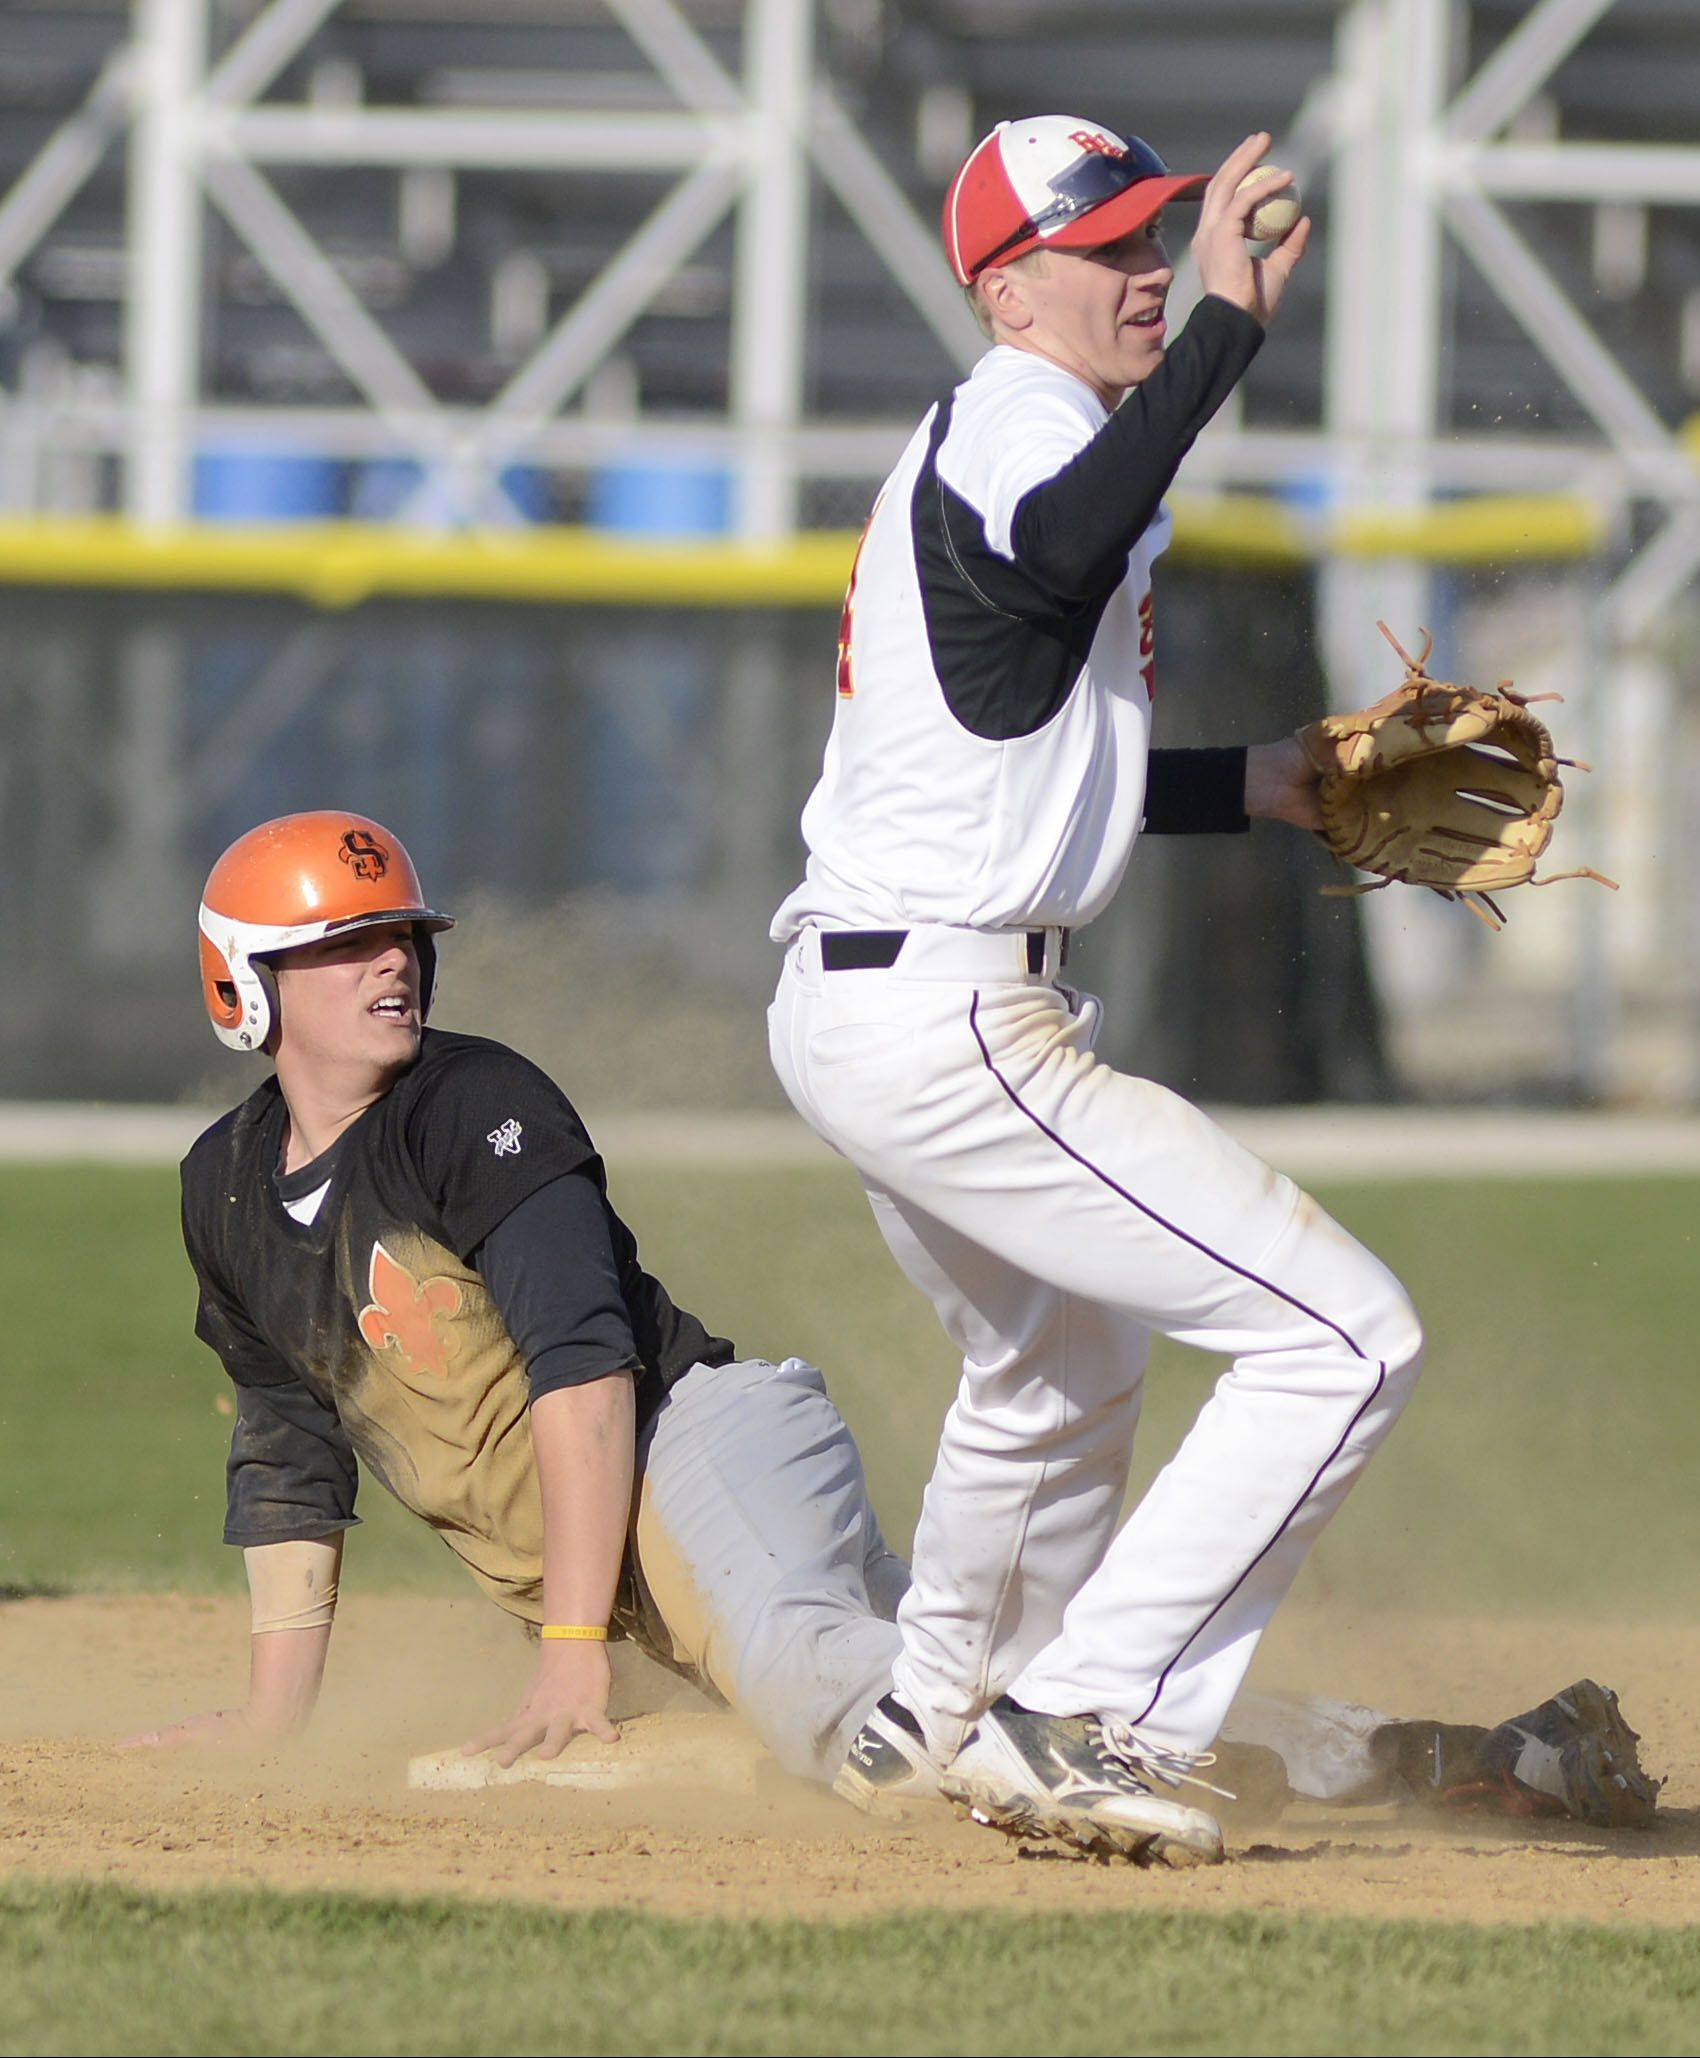 Batavia's Billy Zwick shows he has the ball after tagging St. Charles East's Anthony Sciarrino out at second base Wednesday.